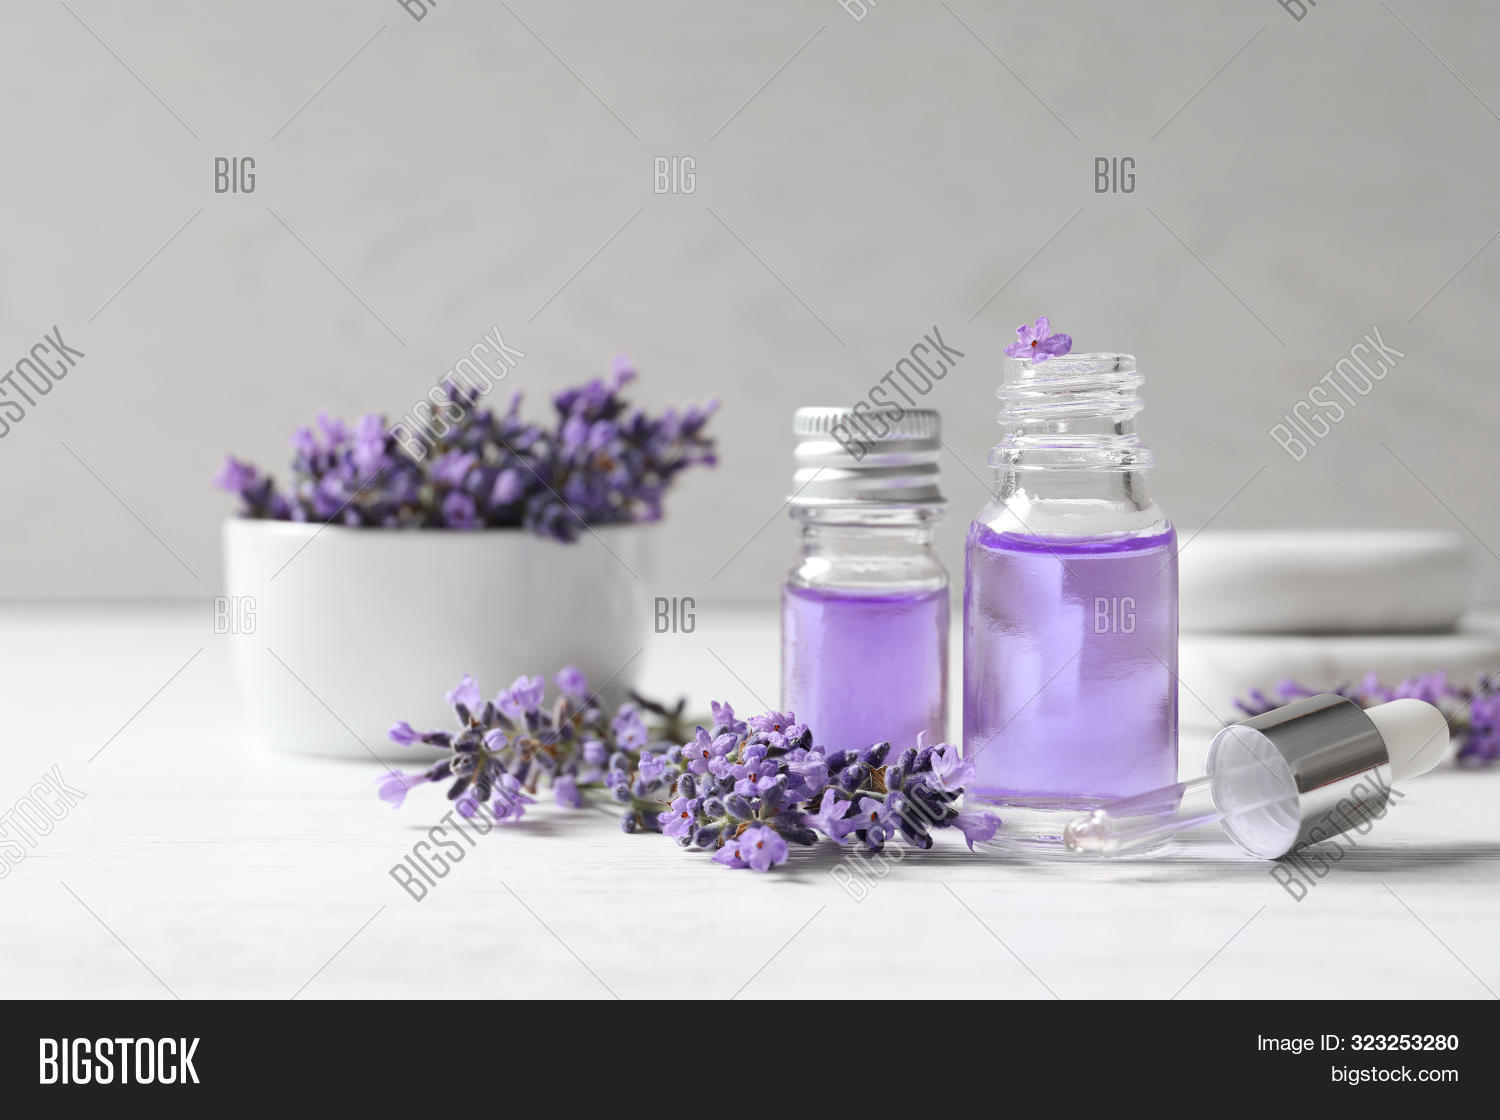 alternative,aroma,aromatherapy,aromatic,artisan,background,bath,beauty,body,bottles,boutique,care,concept,cosmetic,diy,dropper,essential,floral,flowers,fragrance,fresh,glass,health,herbal,homemade,ingredient,lavender,lifestyle,lotion,massage,natural,object,oil,organic,perfume,pipette,products,provence,purple,relax,skin,spa,space,table,therapy,wellness,white,wooden